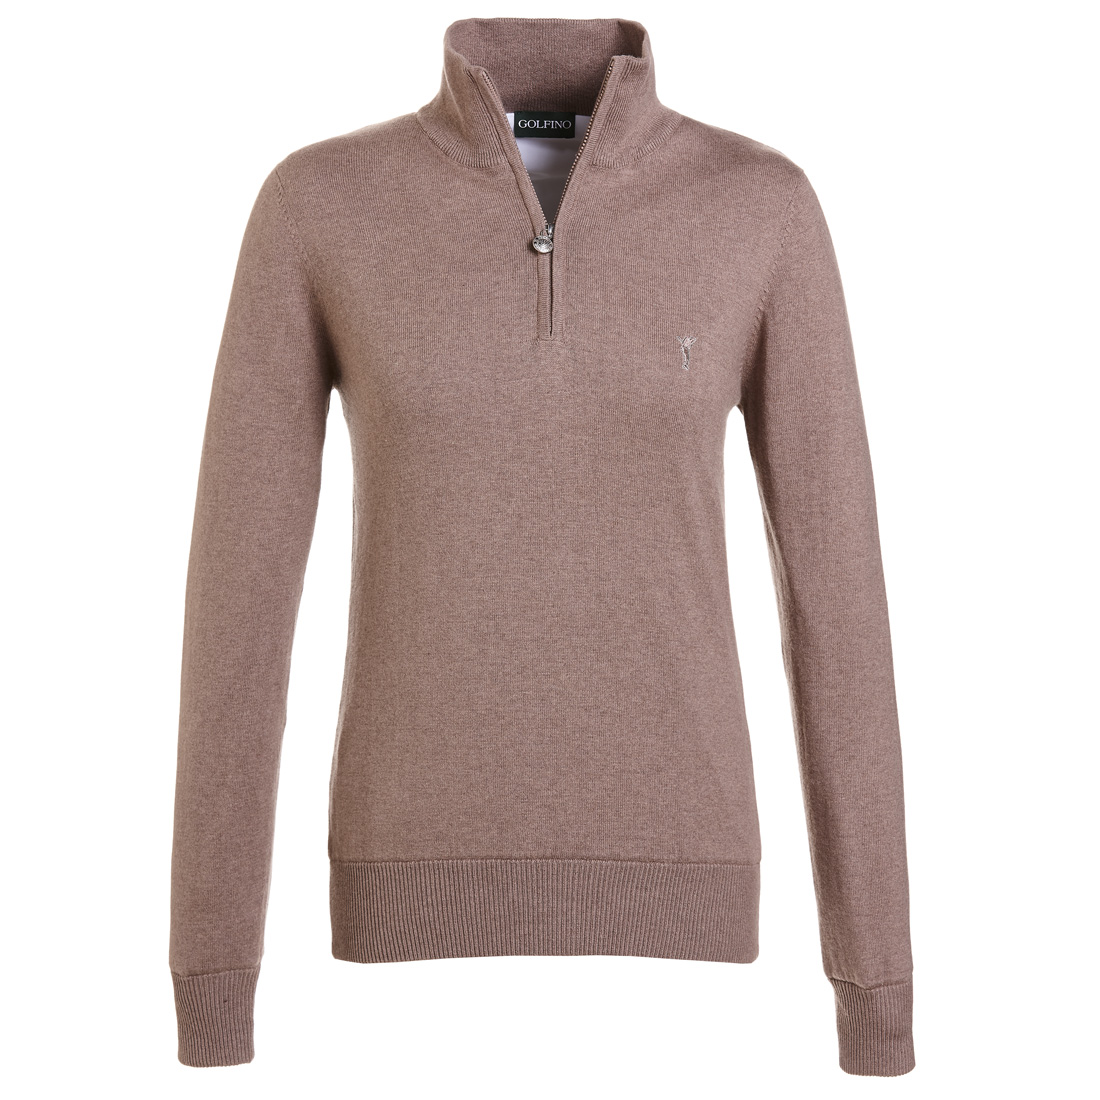 Extrafeiner Windstopper aus Stretch Beige